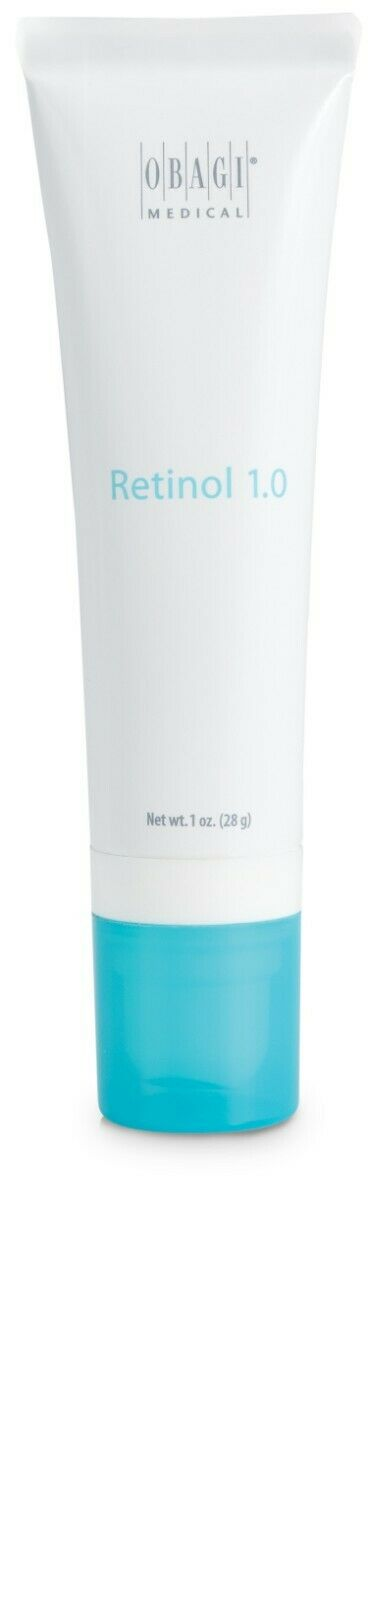 Obagi360 Retinol 1.0 Cream 1 Oz